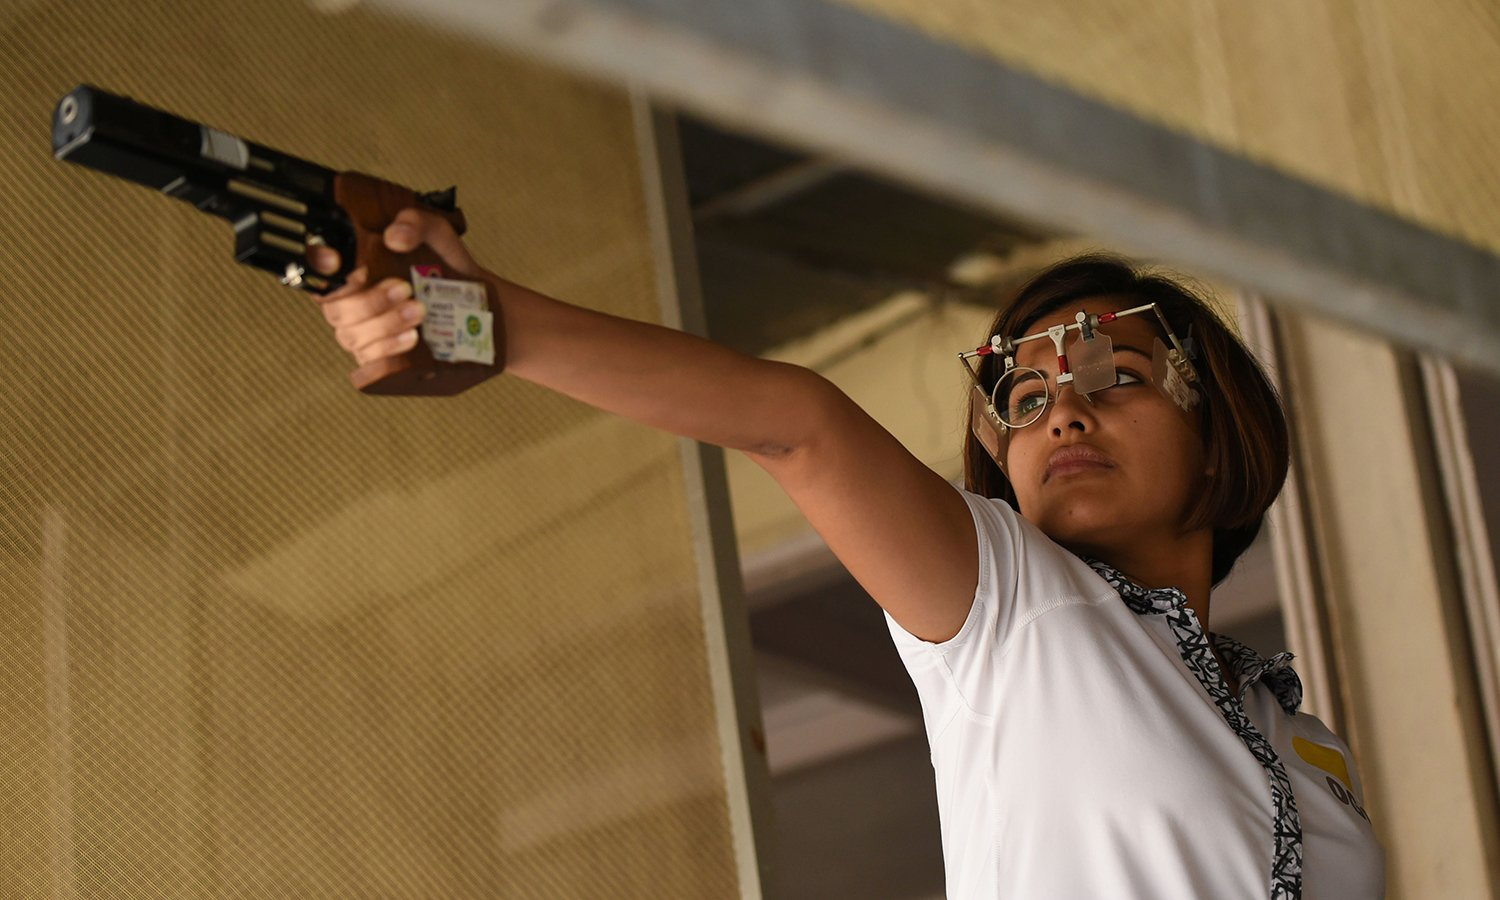 TO GO WITH 'OLY-2016-IND-shooting', INTERVIEW by Peter HUTCHISON In this photograph taken on April 25, 2016, Indian shooter Heena Sidhu lines up a shot as she takes part in a training session at the Maharshtra Rifle Association firing range in Mumbai. With one hand in her pocket and the other on the trigger, India's ace shooter Heena Sidhu is trying to keep it cool as she targets glory at the Rio Olympics. The 26-year-old, who is a qualified dentist, may be desperate to put a smile on the face of medal-starved fans back home but she knows that she must stay relaxed despite carrying the huge burden of an expectant nation. / AFP PHOTO / INDRANIL MUKHERJEE / TO GO WITH 'OLY-2016-IND-shooting', INTERVIEW by Peter HUTCHISON